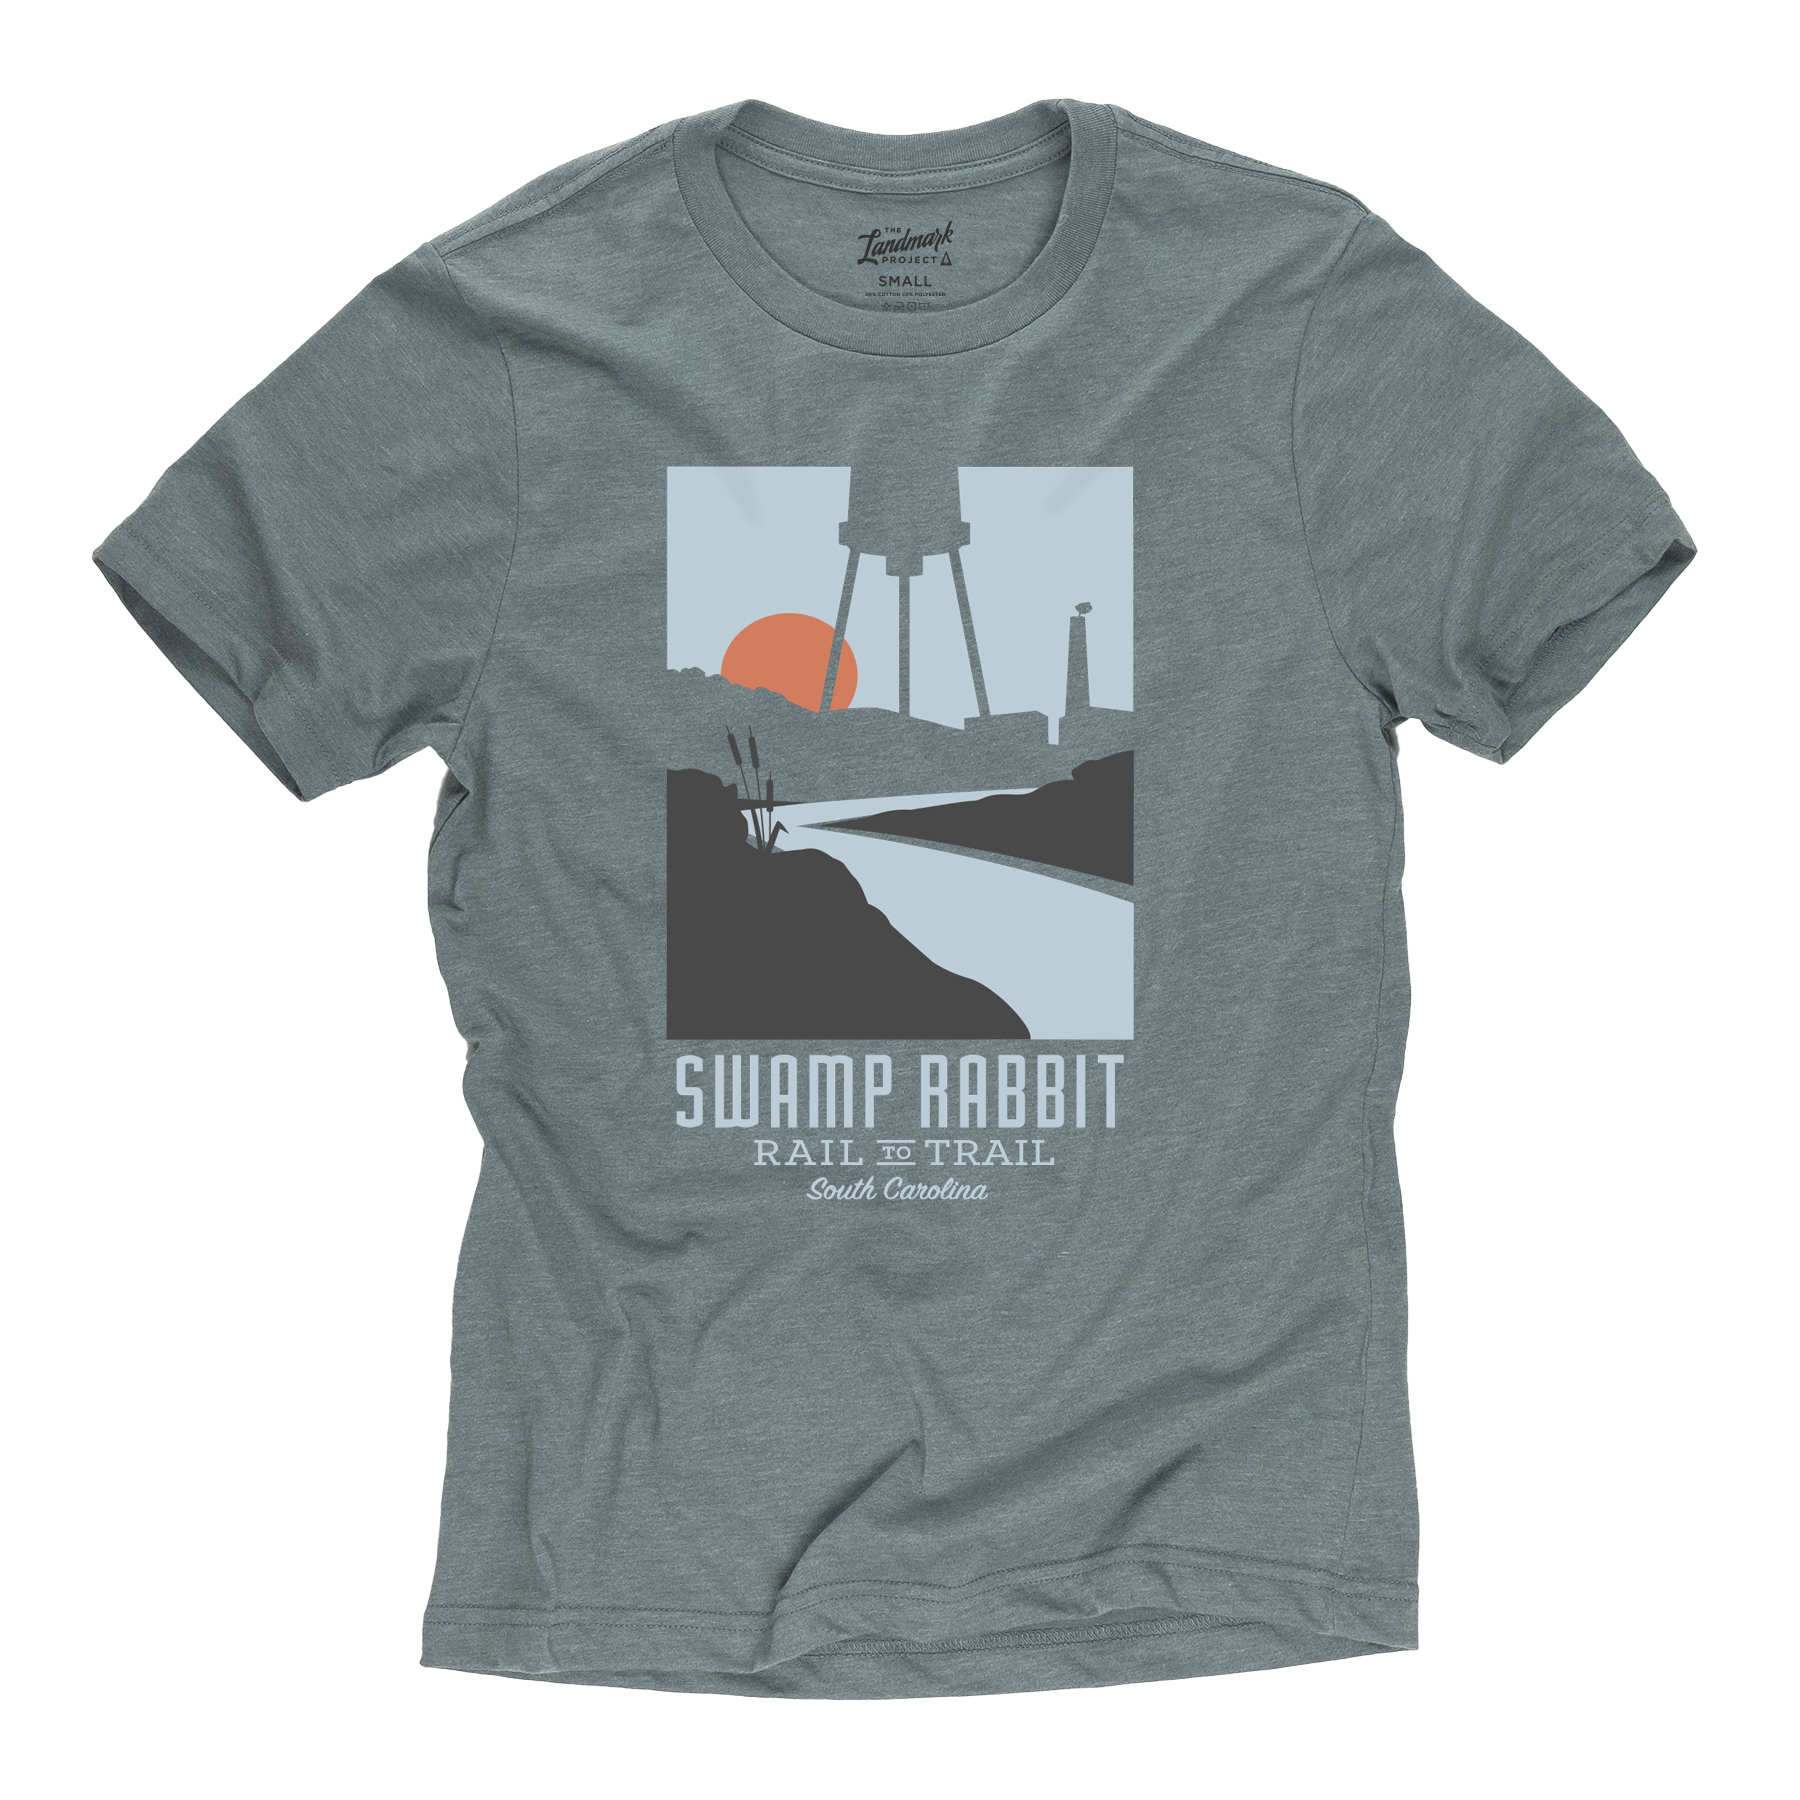 swamp-rabbit-trail-tee.jpg